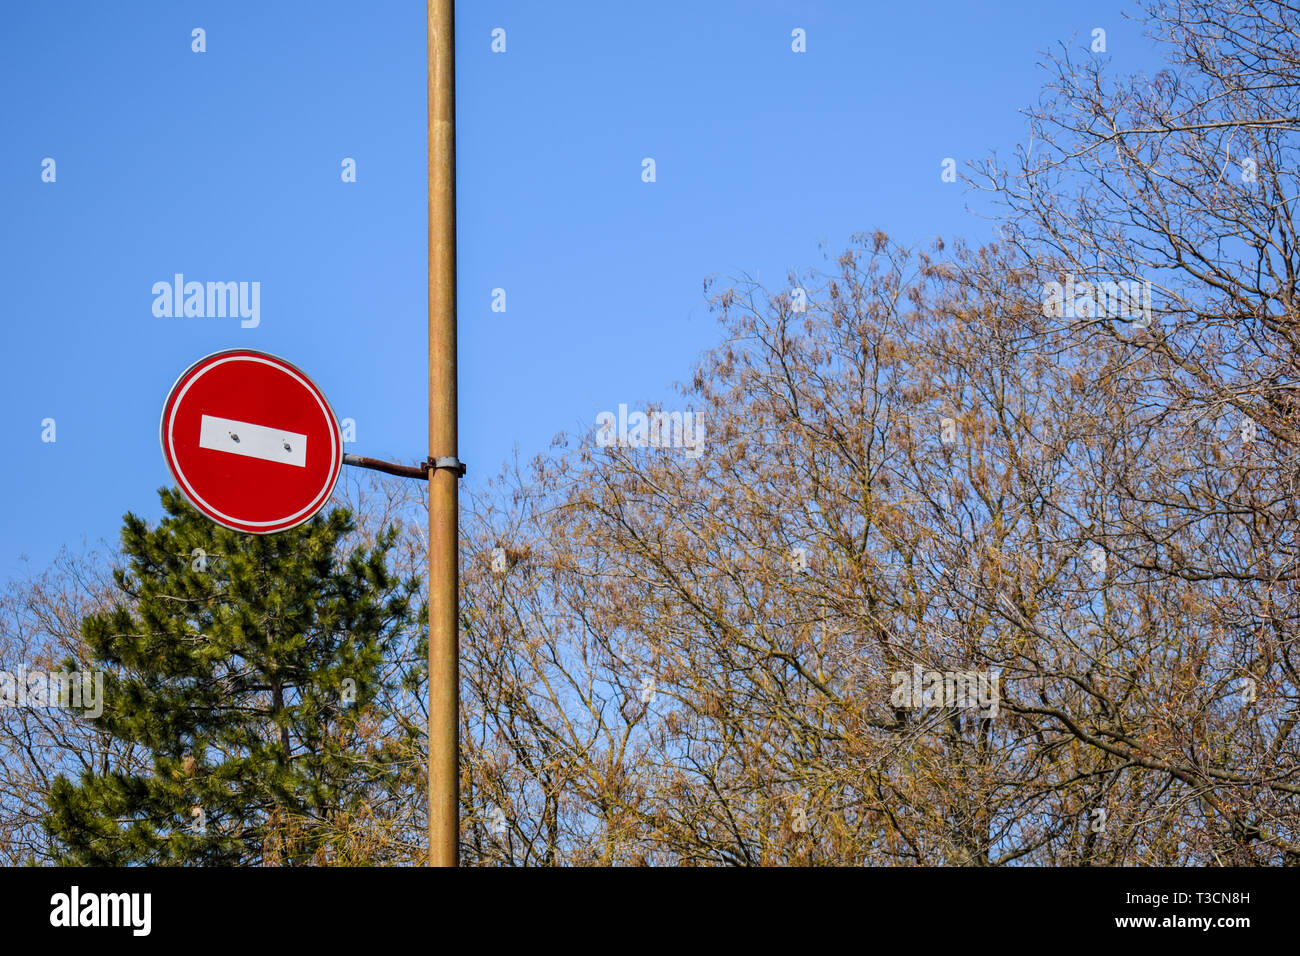 Road sign No entry against the blue sky and trees. Stock Photo